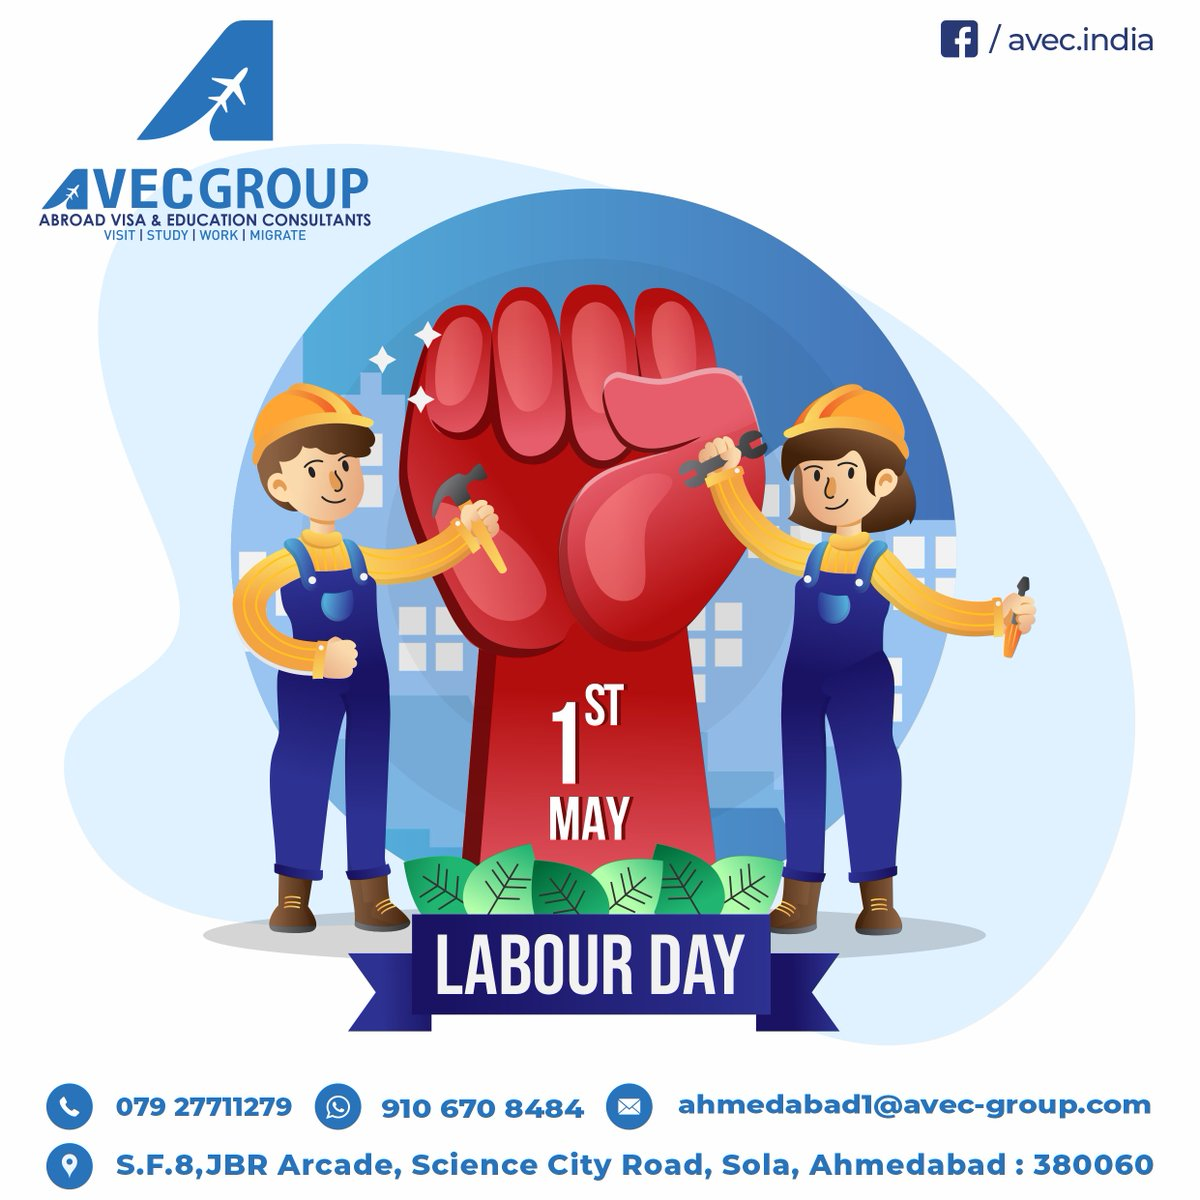 #labourday #longweekend #bahrain #events #may #mayday #labour #toronto #newyear #love #vote #worldlabourday #bhfyp #fun #workout #labourdayweekend #fitness #happiness #chicago #nosurgery #gymworks #laborday #groupclasses #celebration #bahrainevents #personaltraining #alpha #avec https://t.co/pxfMOdvZIT